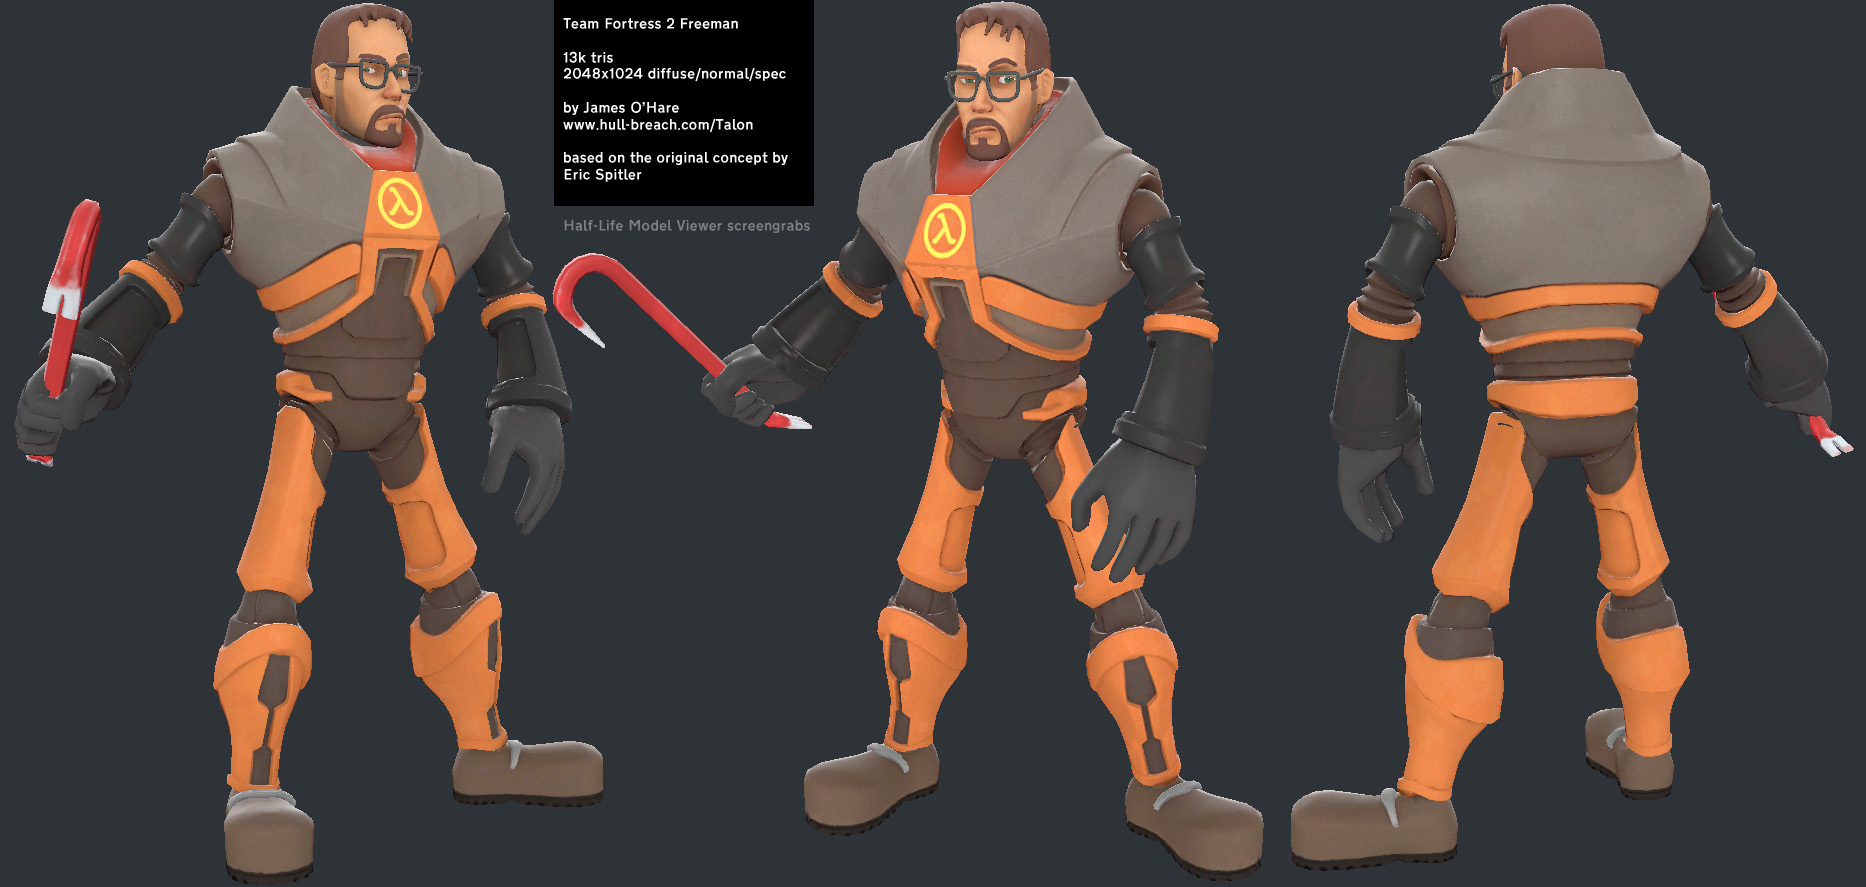 james o u0026 39 hare  game character artist  team fortress 2